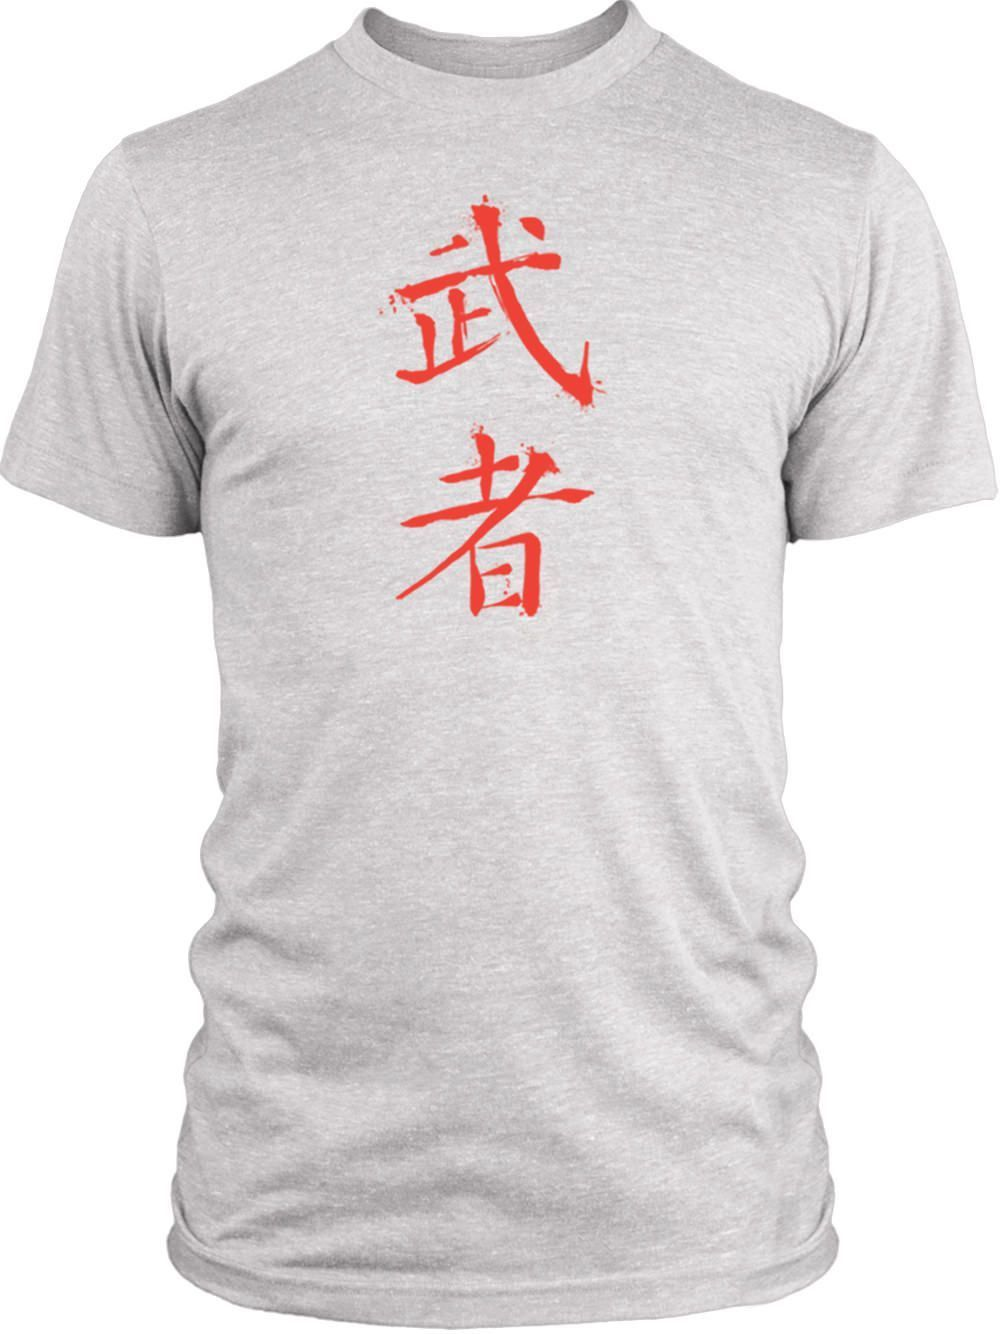 7dc0f209 Big Texas Warrior Chinese Symbol (Red) Vintage Tri-Blend T-Shirt ...